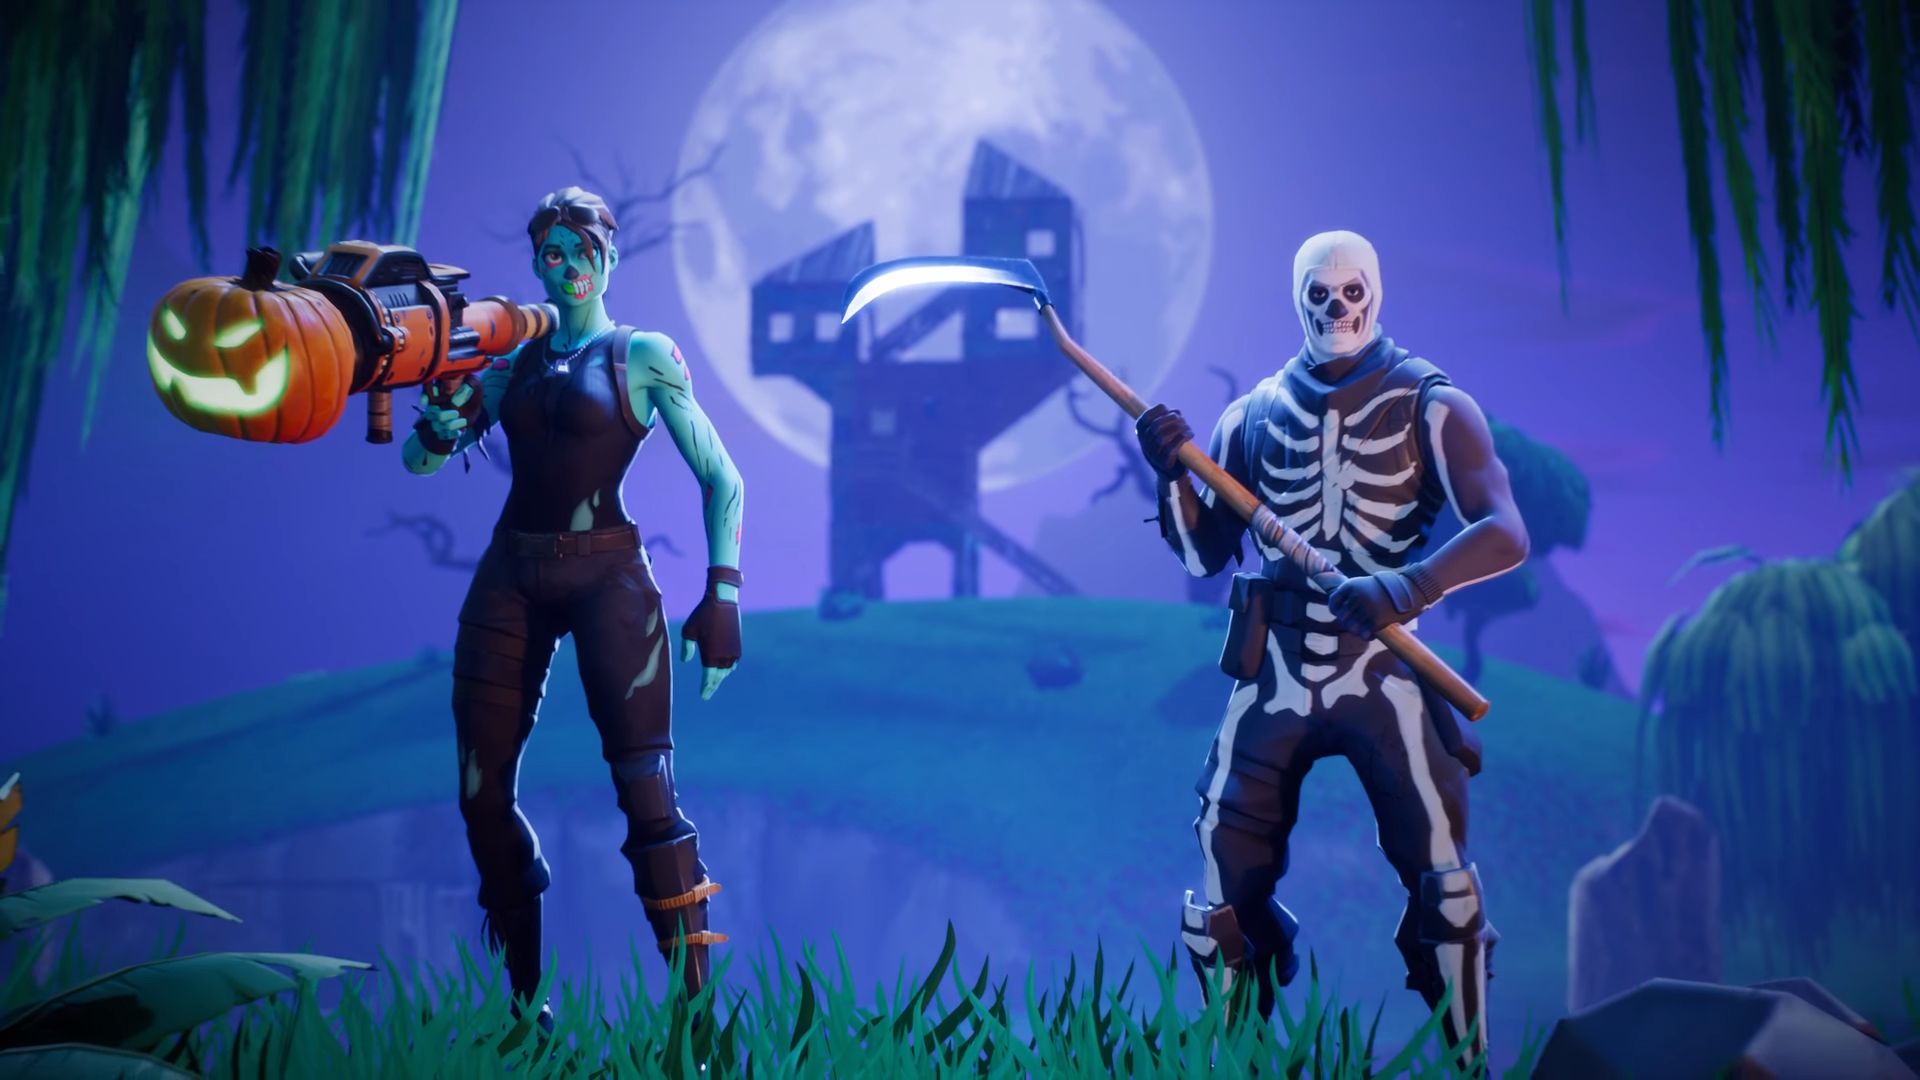 2560x1440 Fortnite Background | Fortnite Tracker Check Your